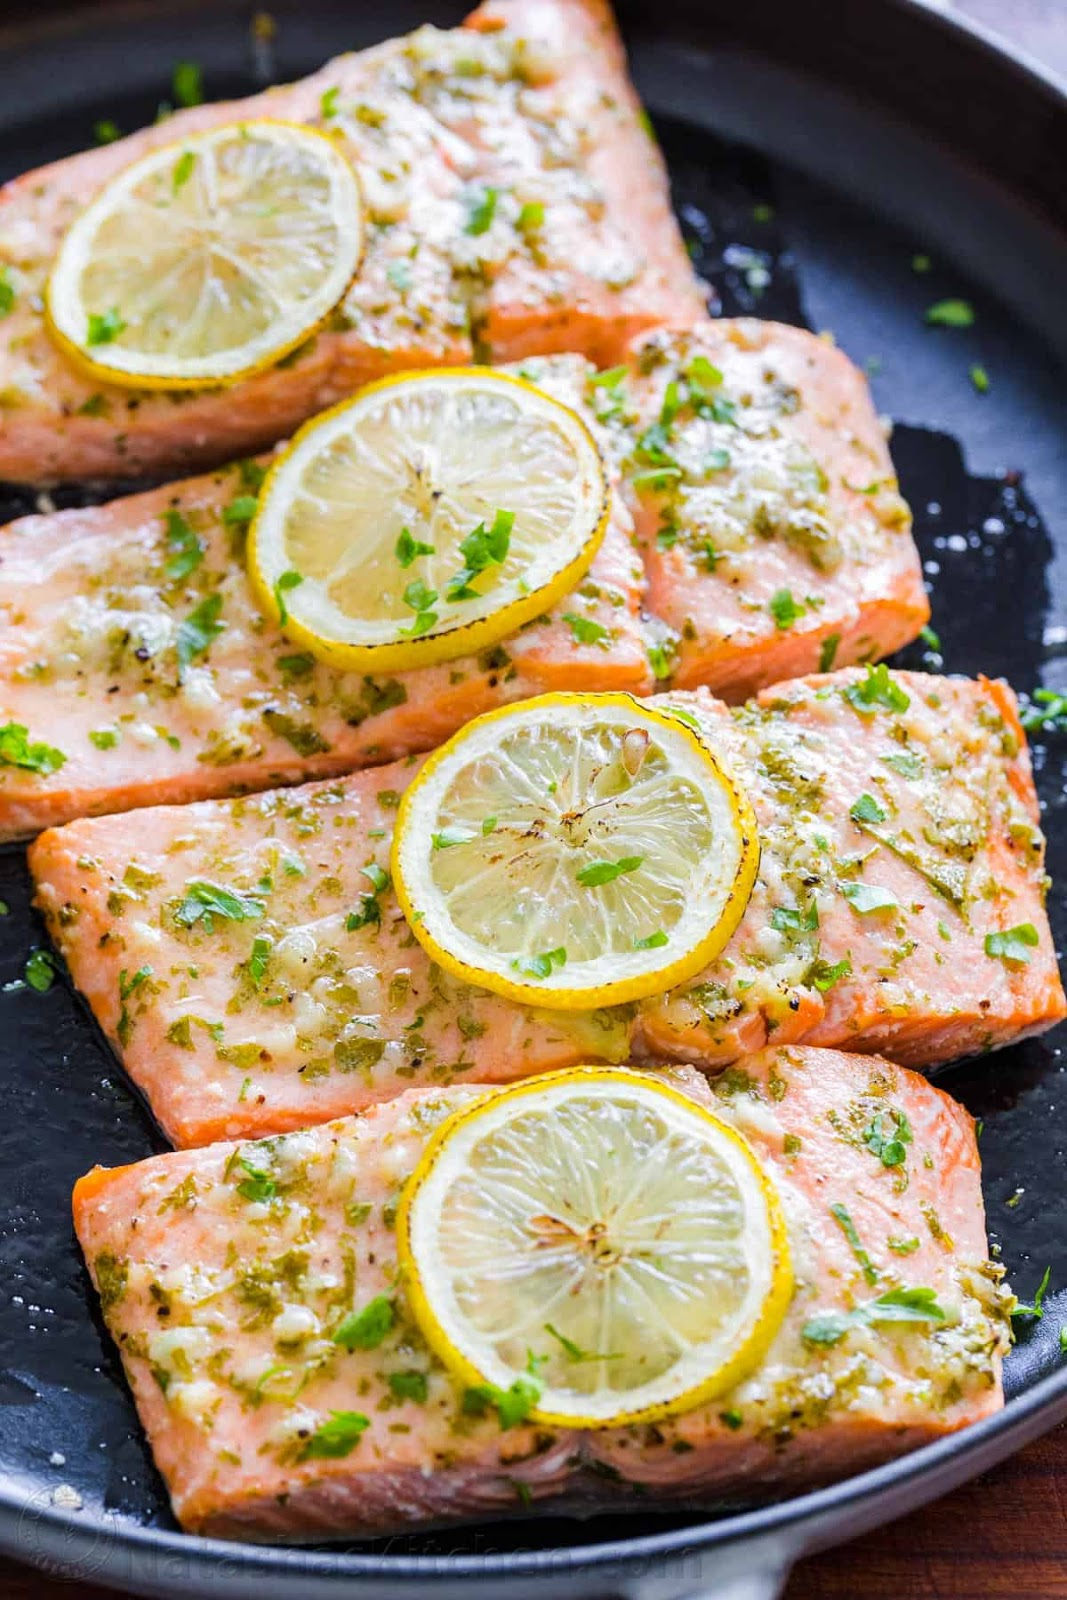 Baked Salmon with Garlic and Dijon #salmon #baked #breakfast #dinner #recipes